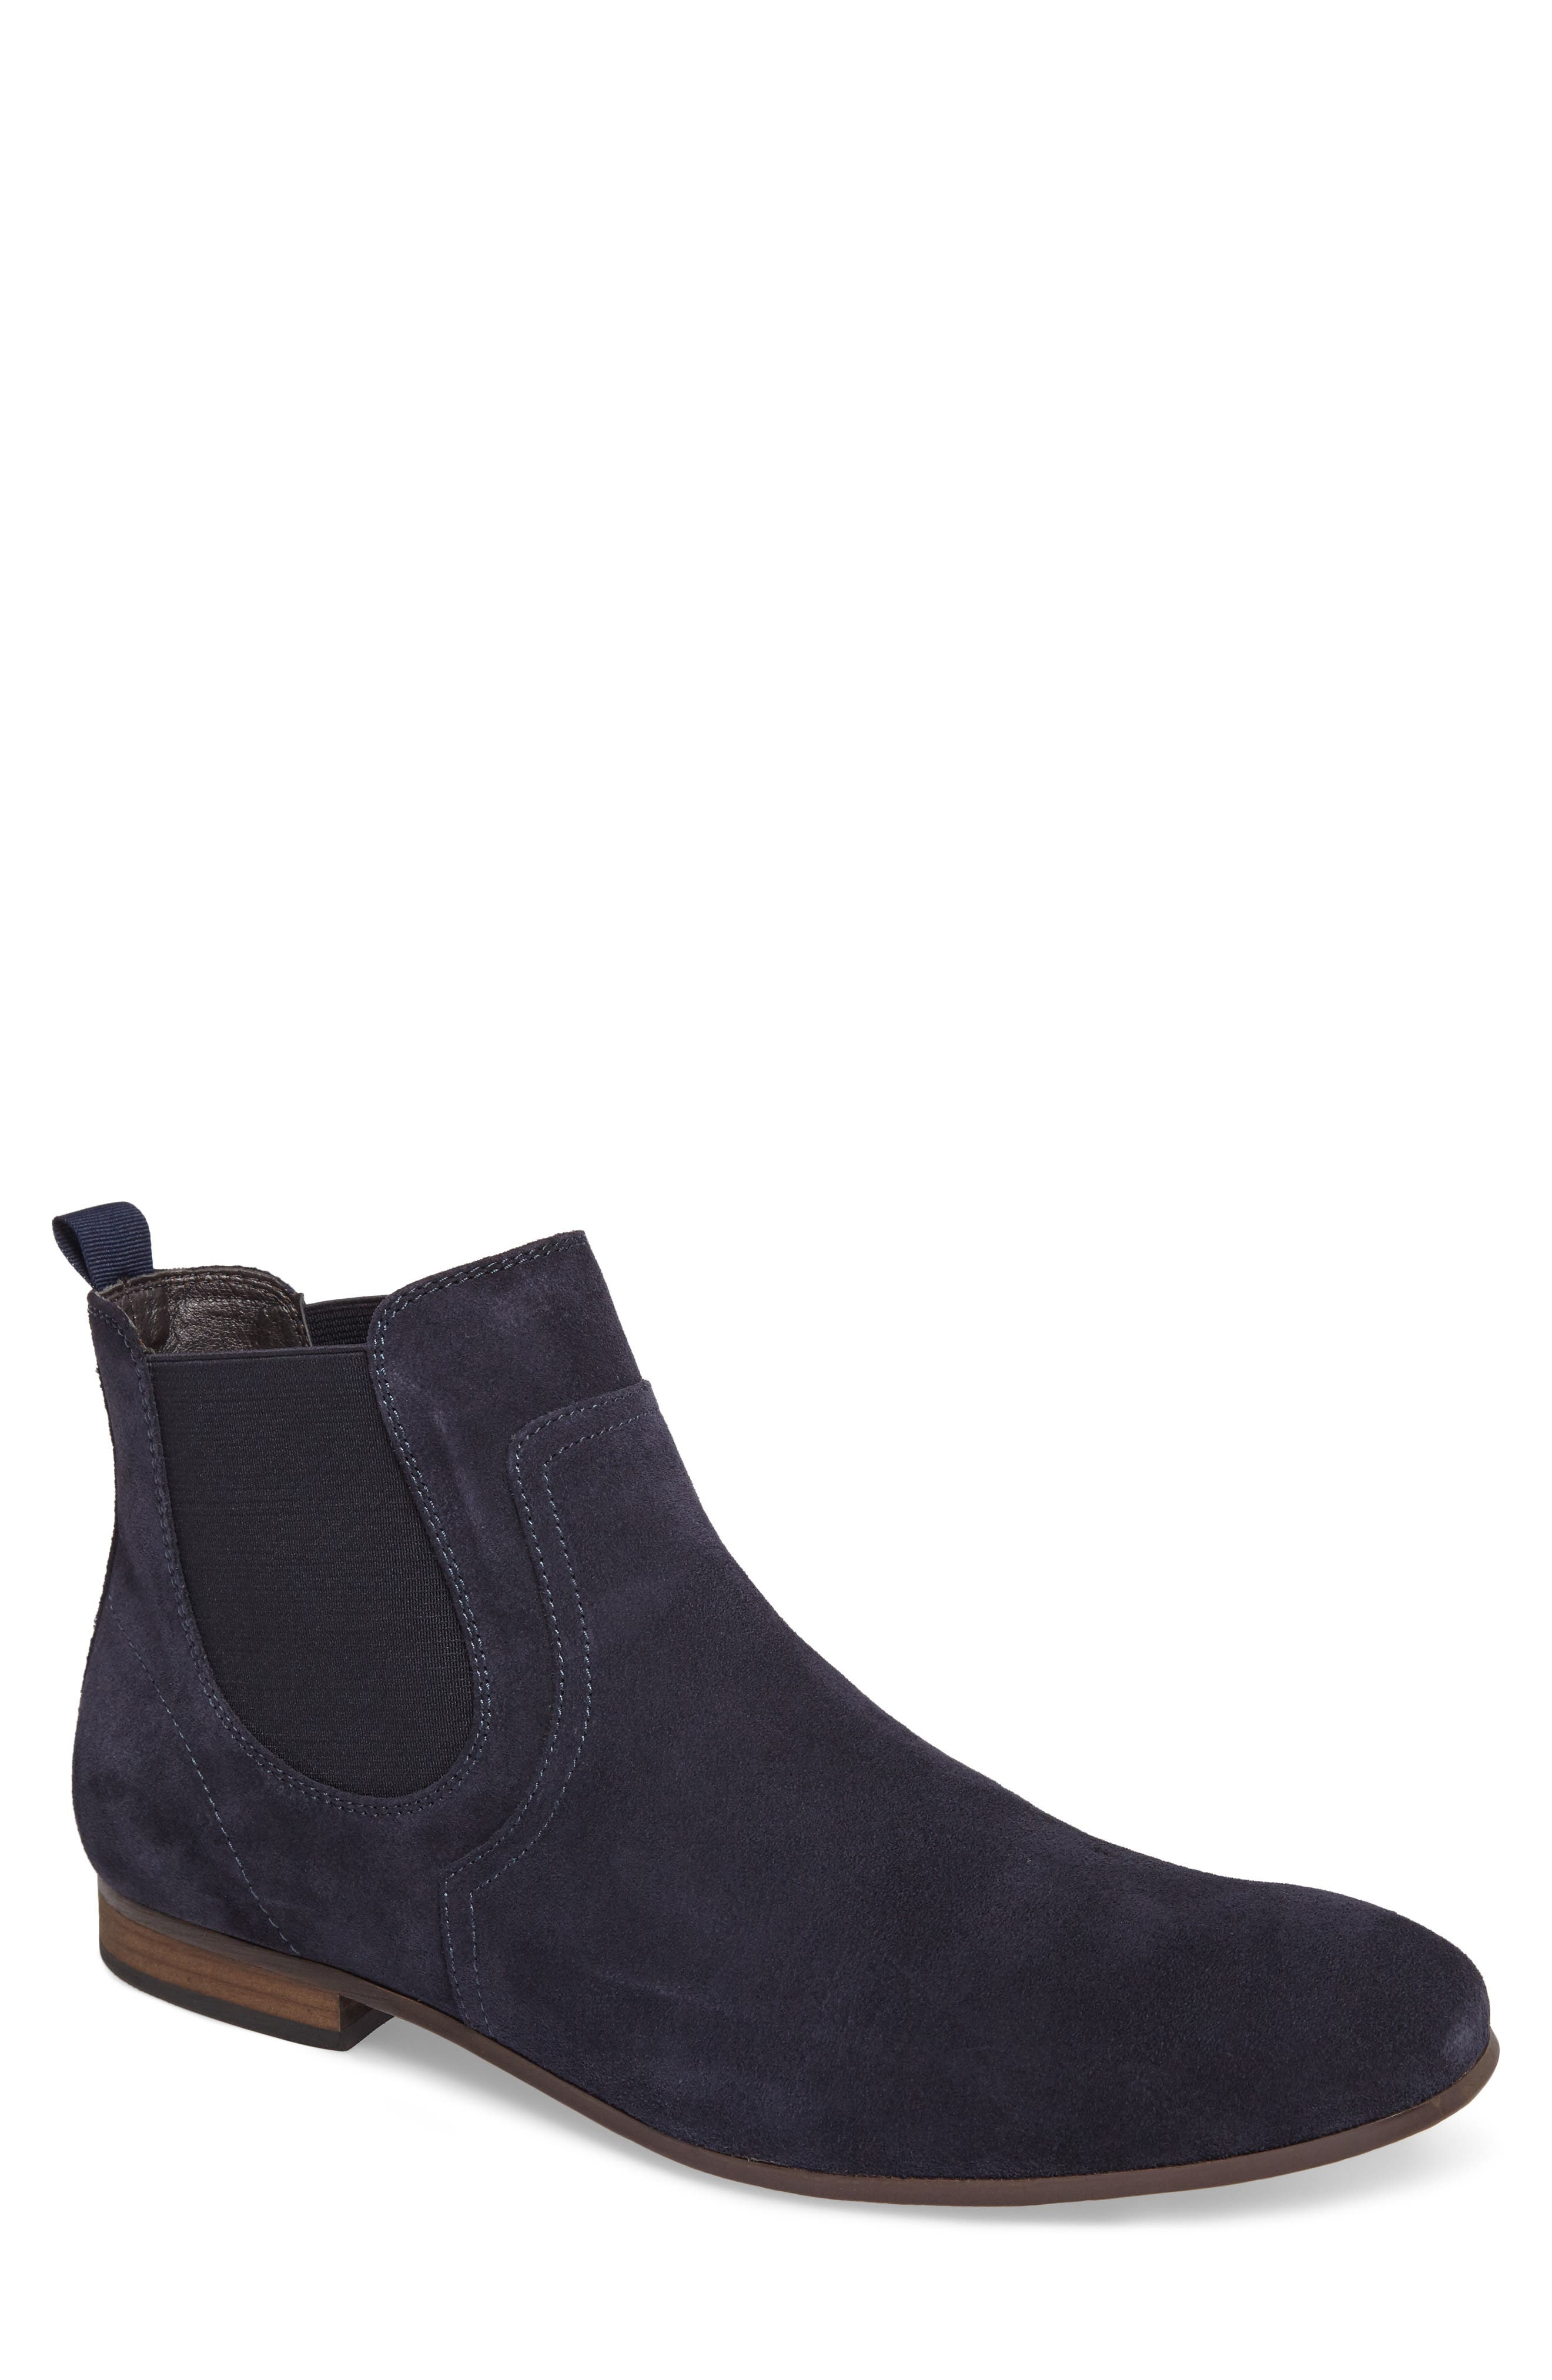 Brysen Chelsea Boot,                             Main thumbnail 1, color,                             Blue Suede